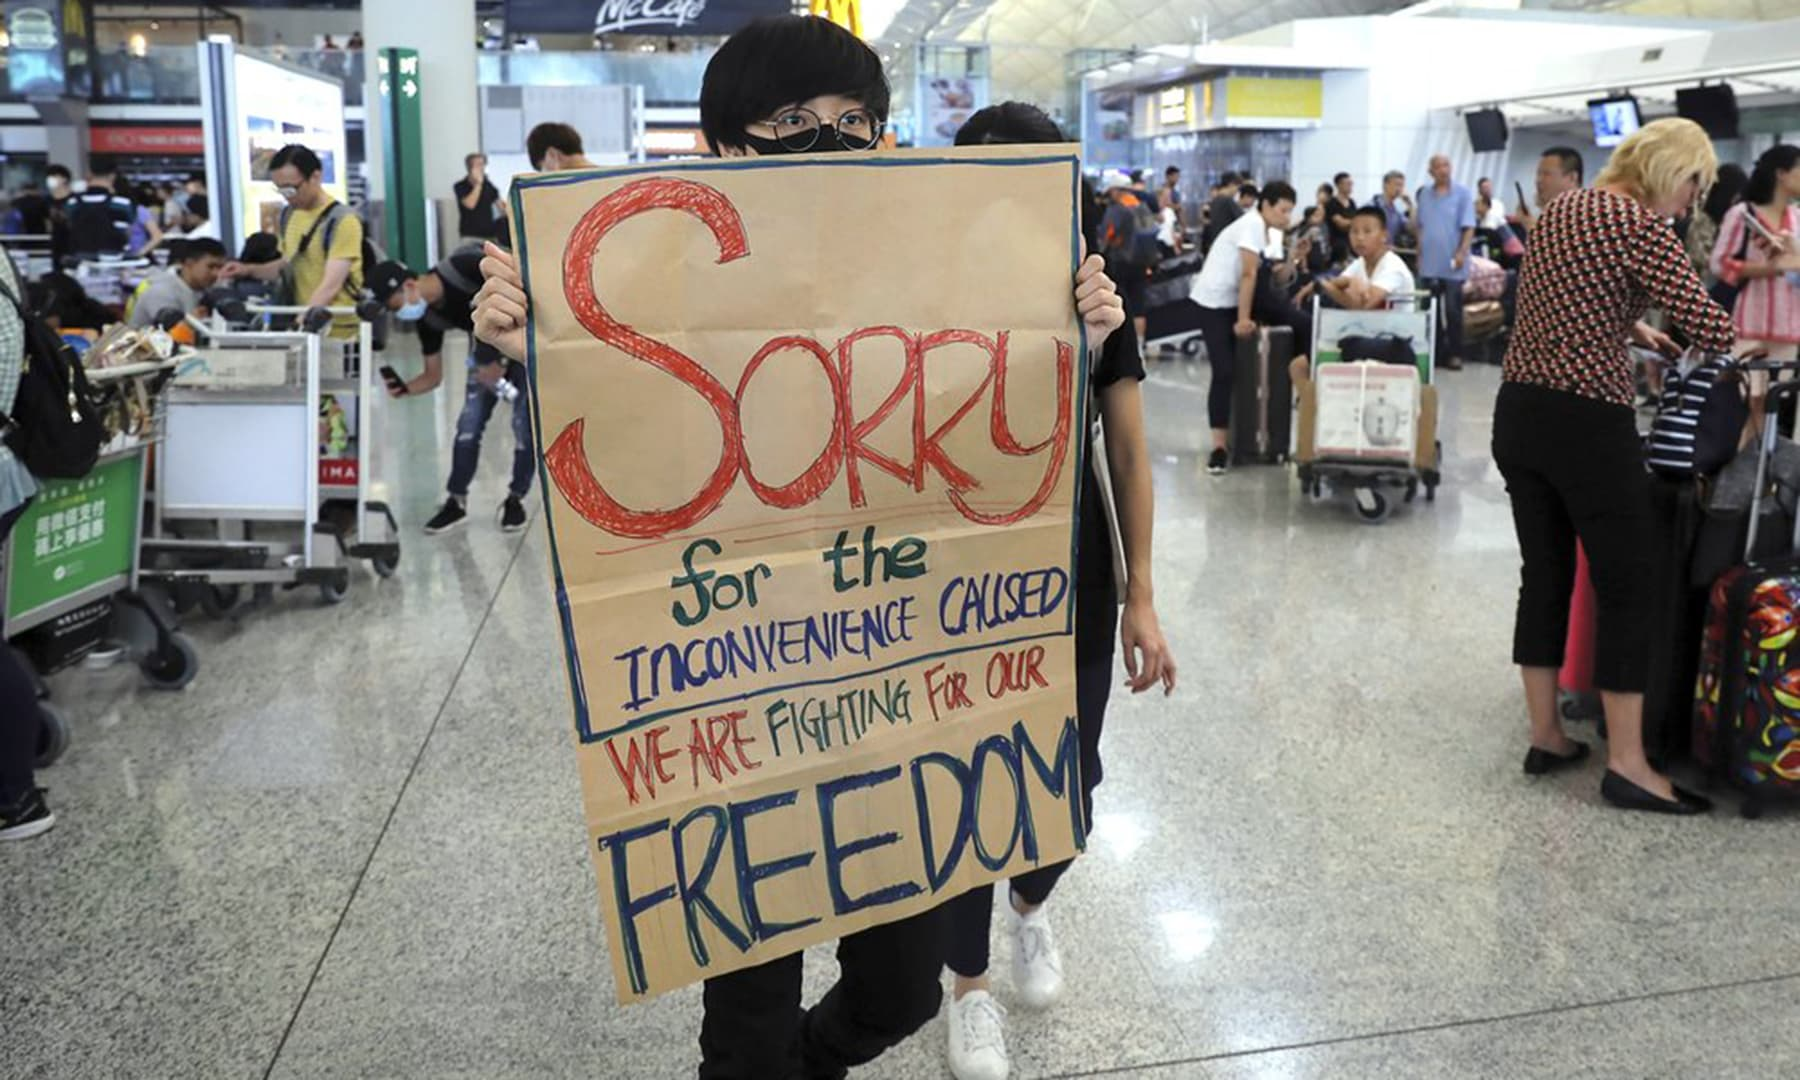 A protester shows a placard to stranded travellers during a demonstration at the Airport in Hong Kong on Aug 13, 2019. — AP